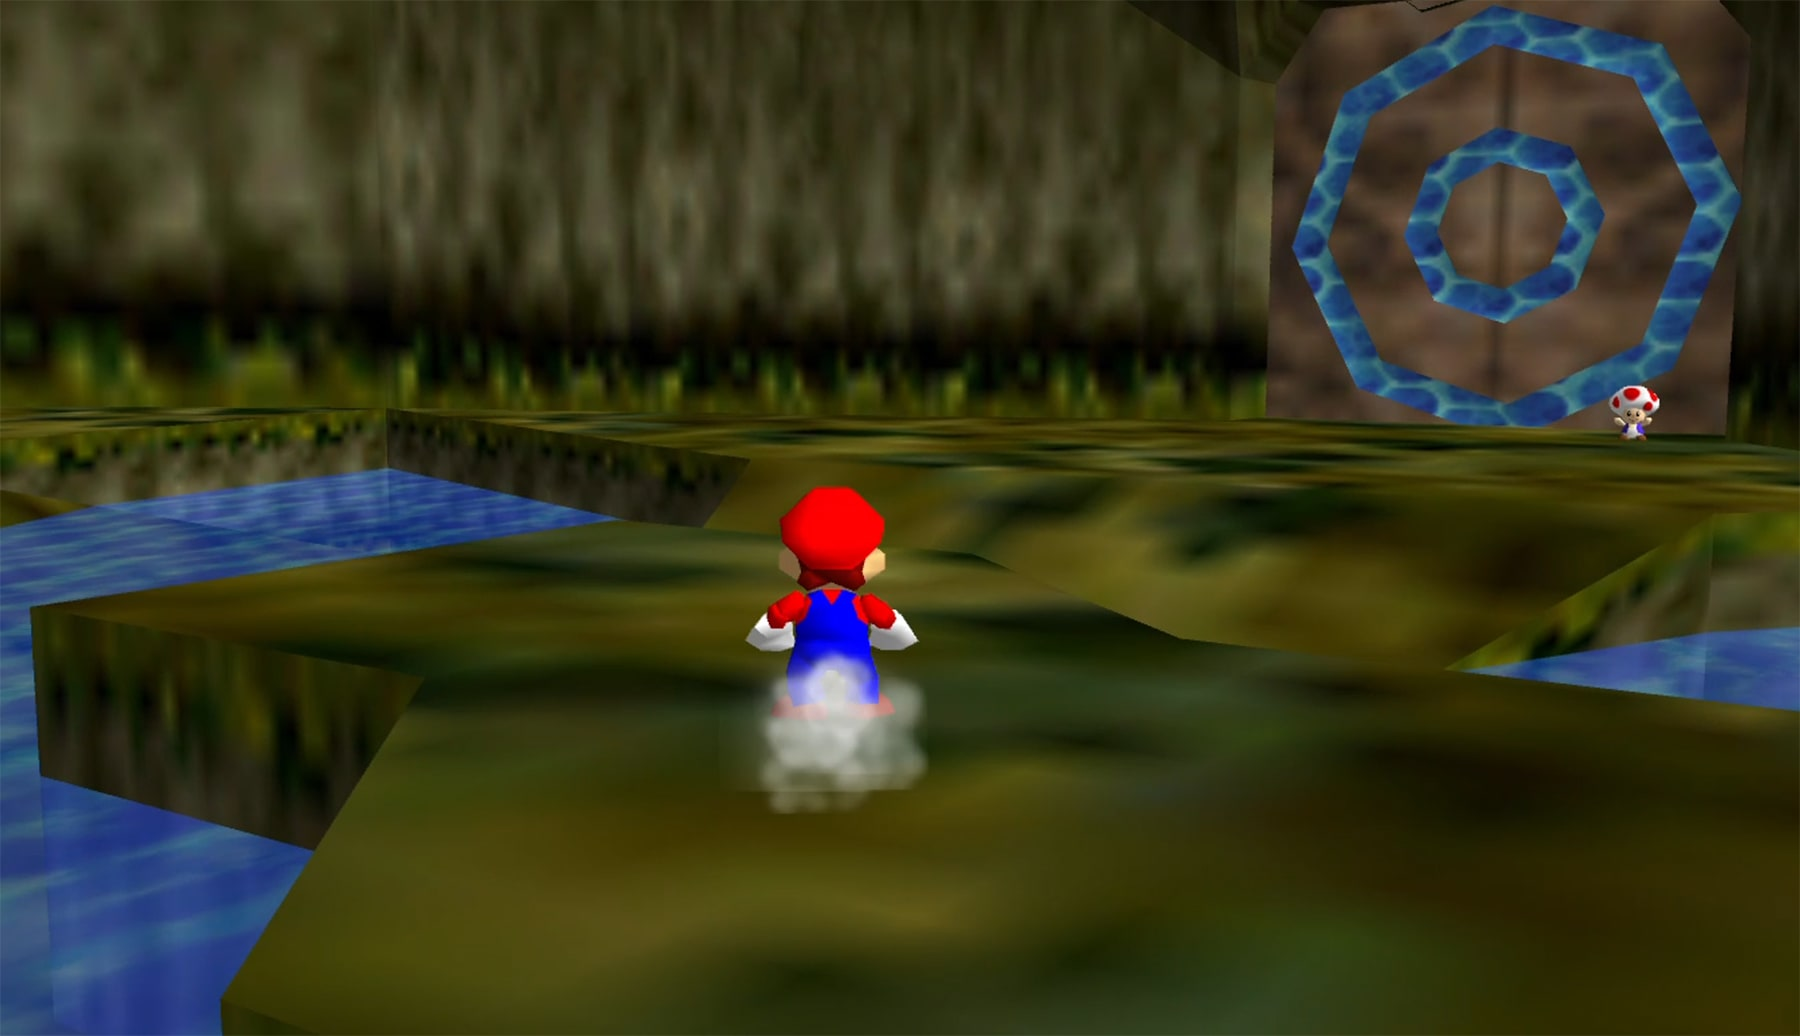 Super Mario 64: Ocarina of Time' is the perfect Nintendo mashup